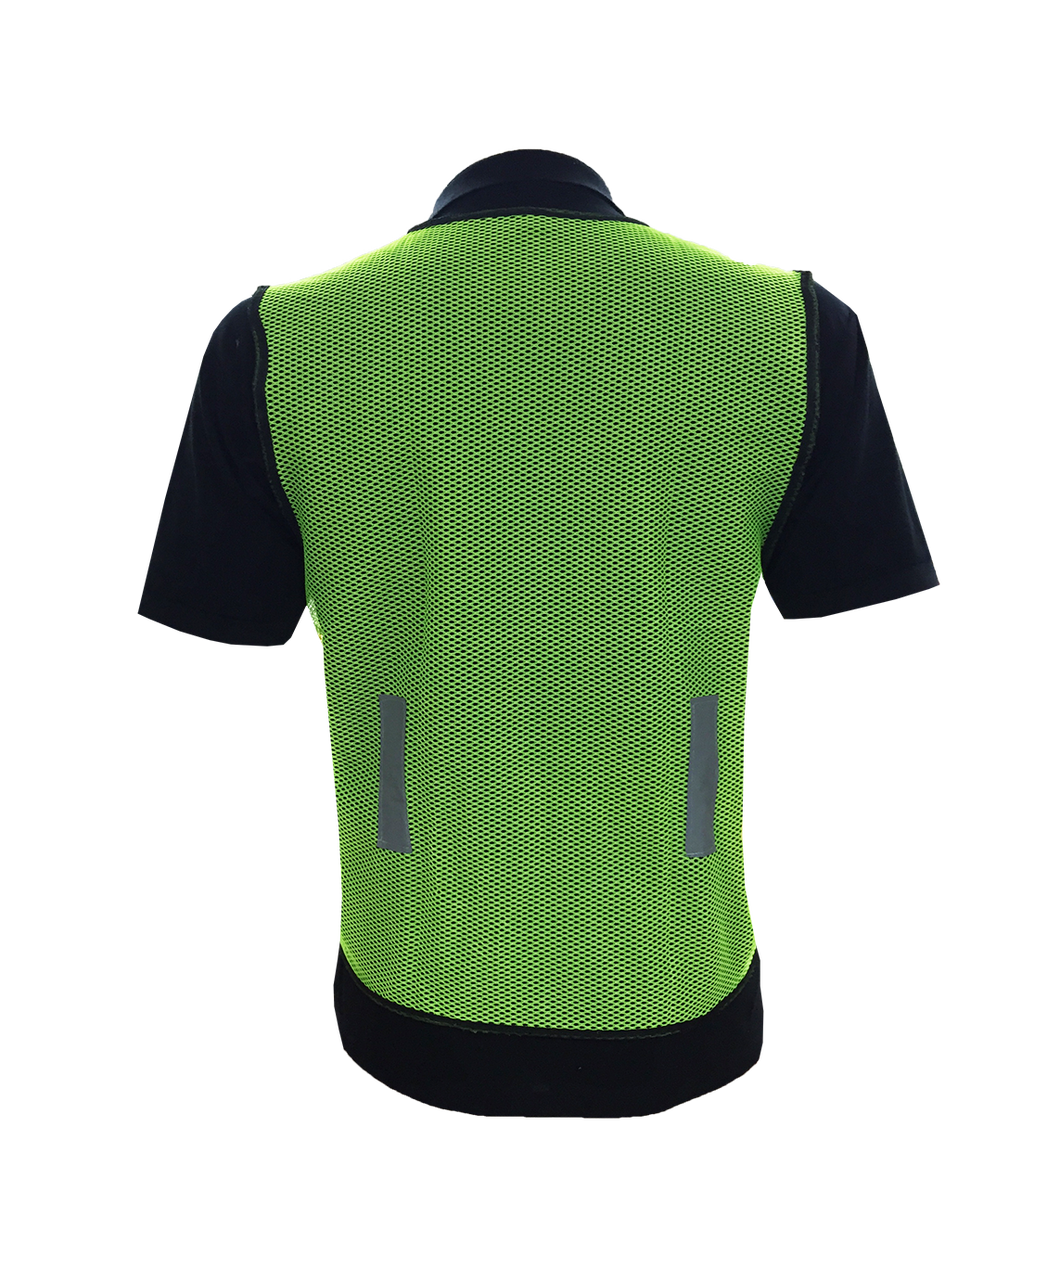 Transparent tshirt netted. Safety vest netting lime